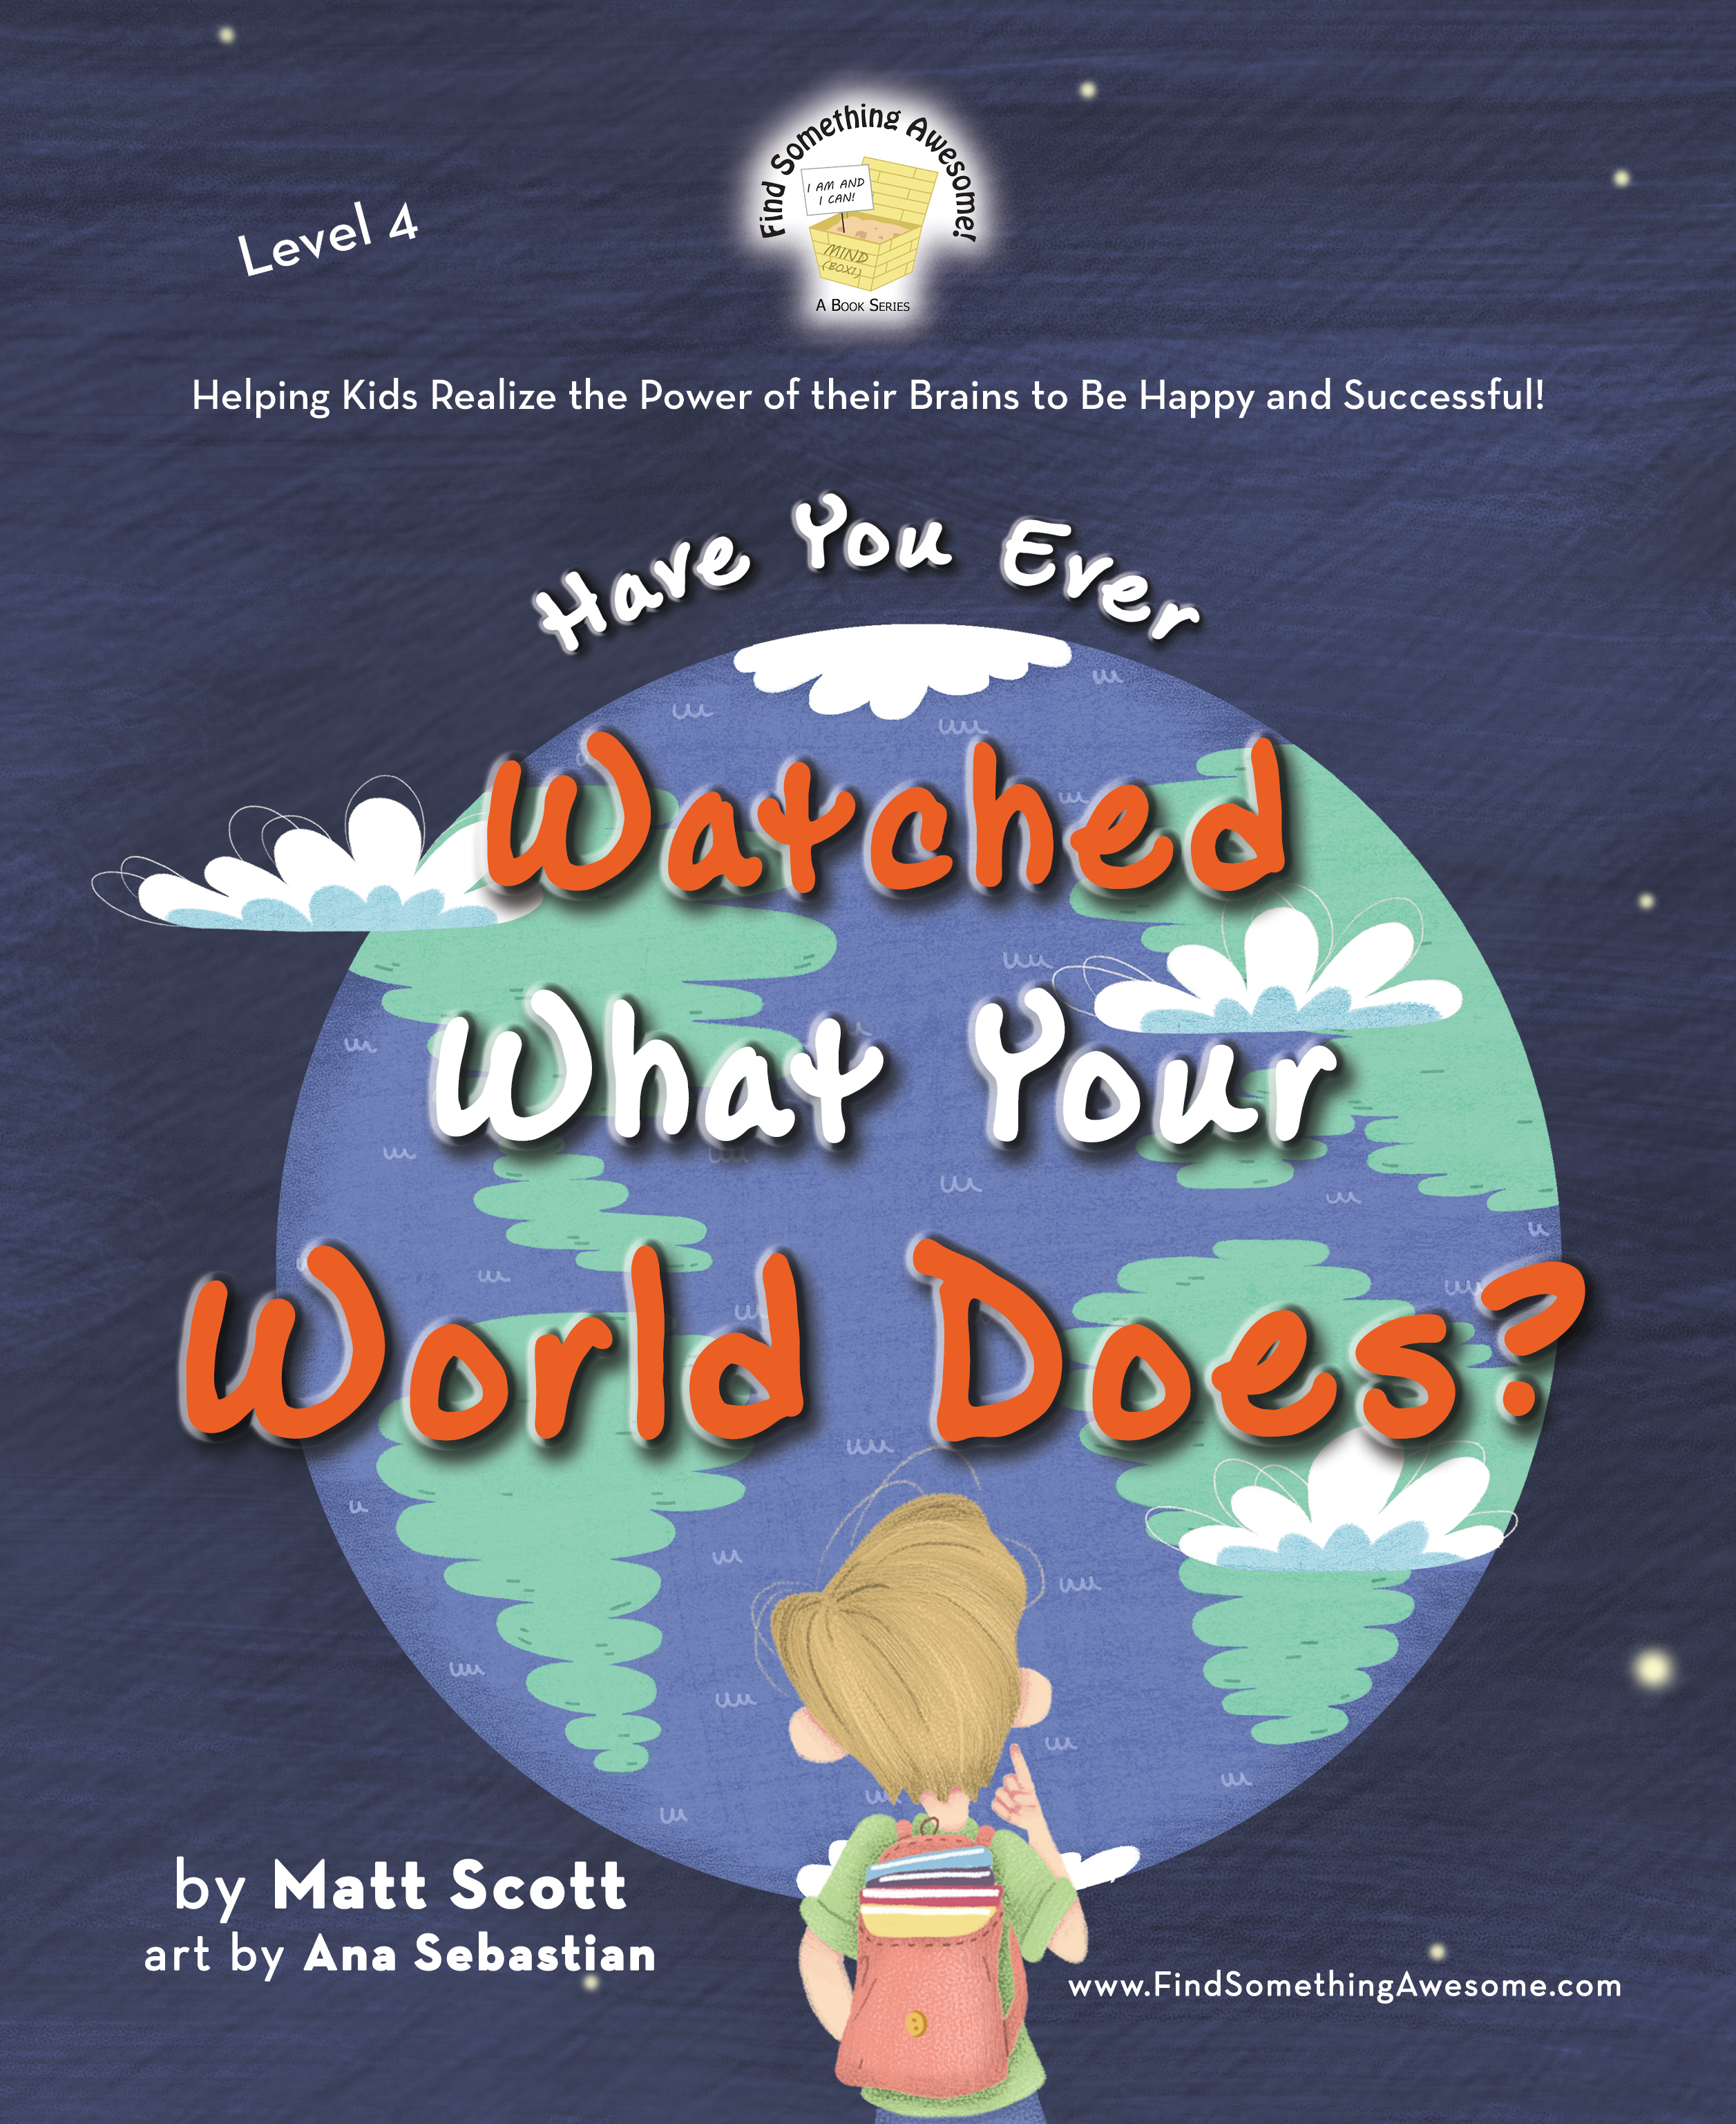 https://mascotbooks.com/wp-content/uploads/2016/09/HaveYouWatchedWorld_Cover.jpg